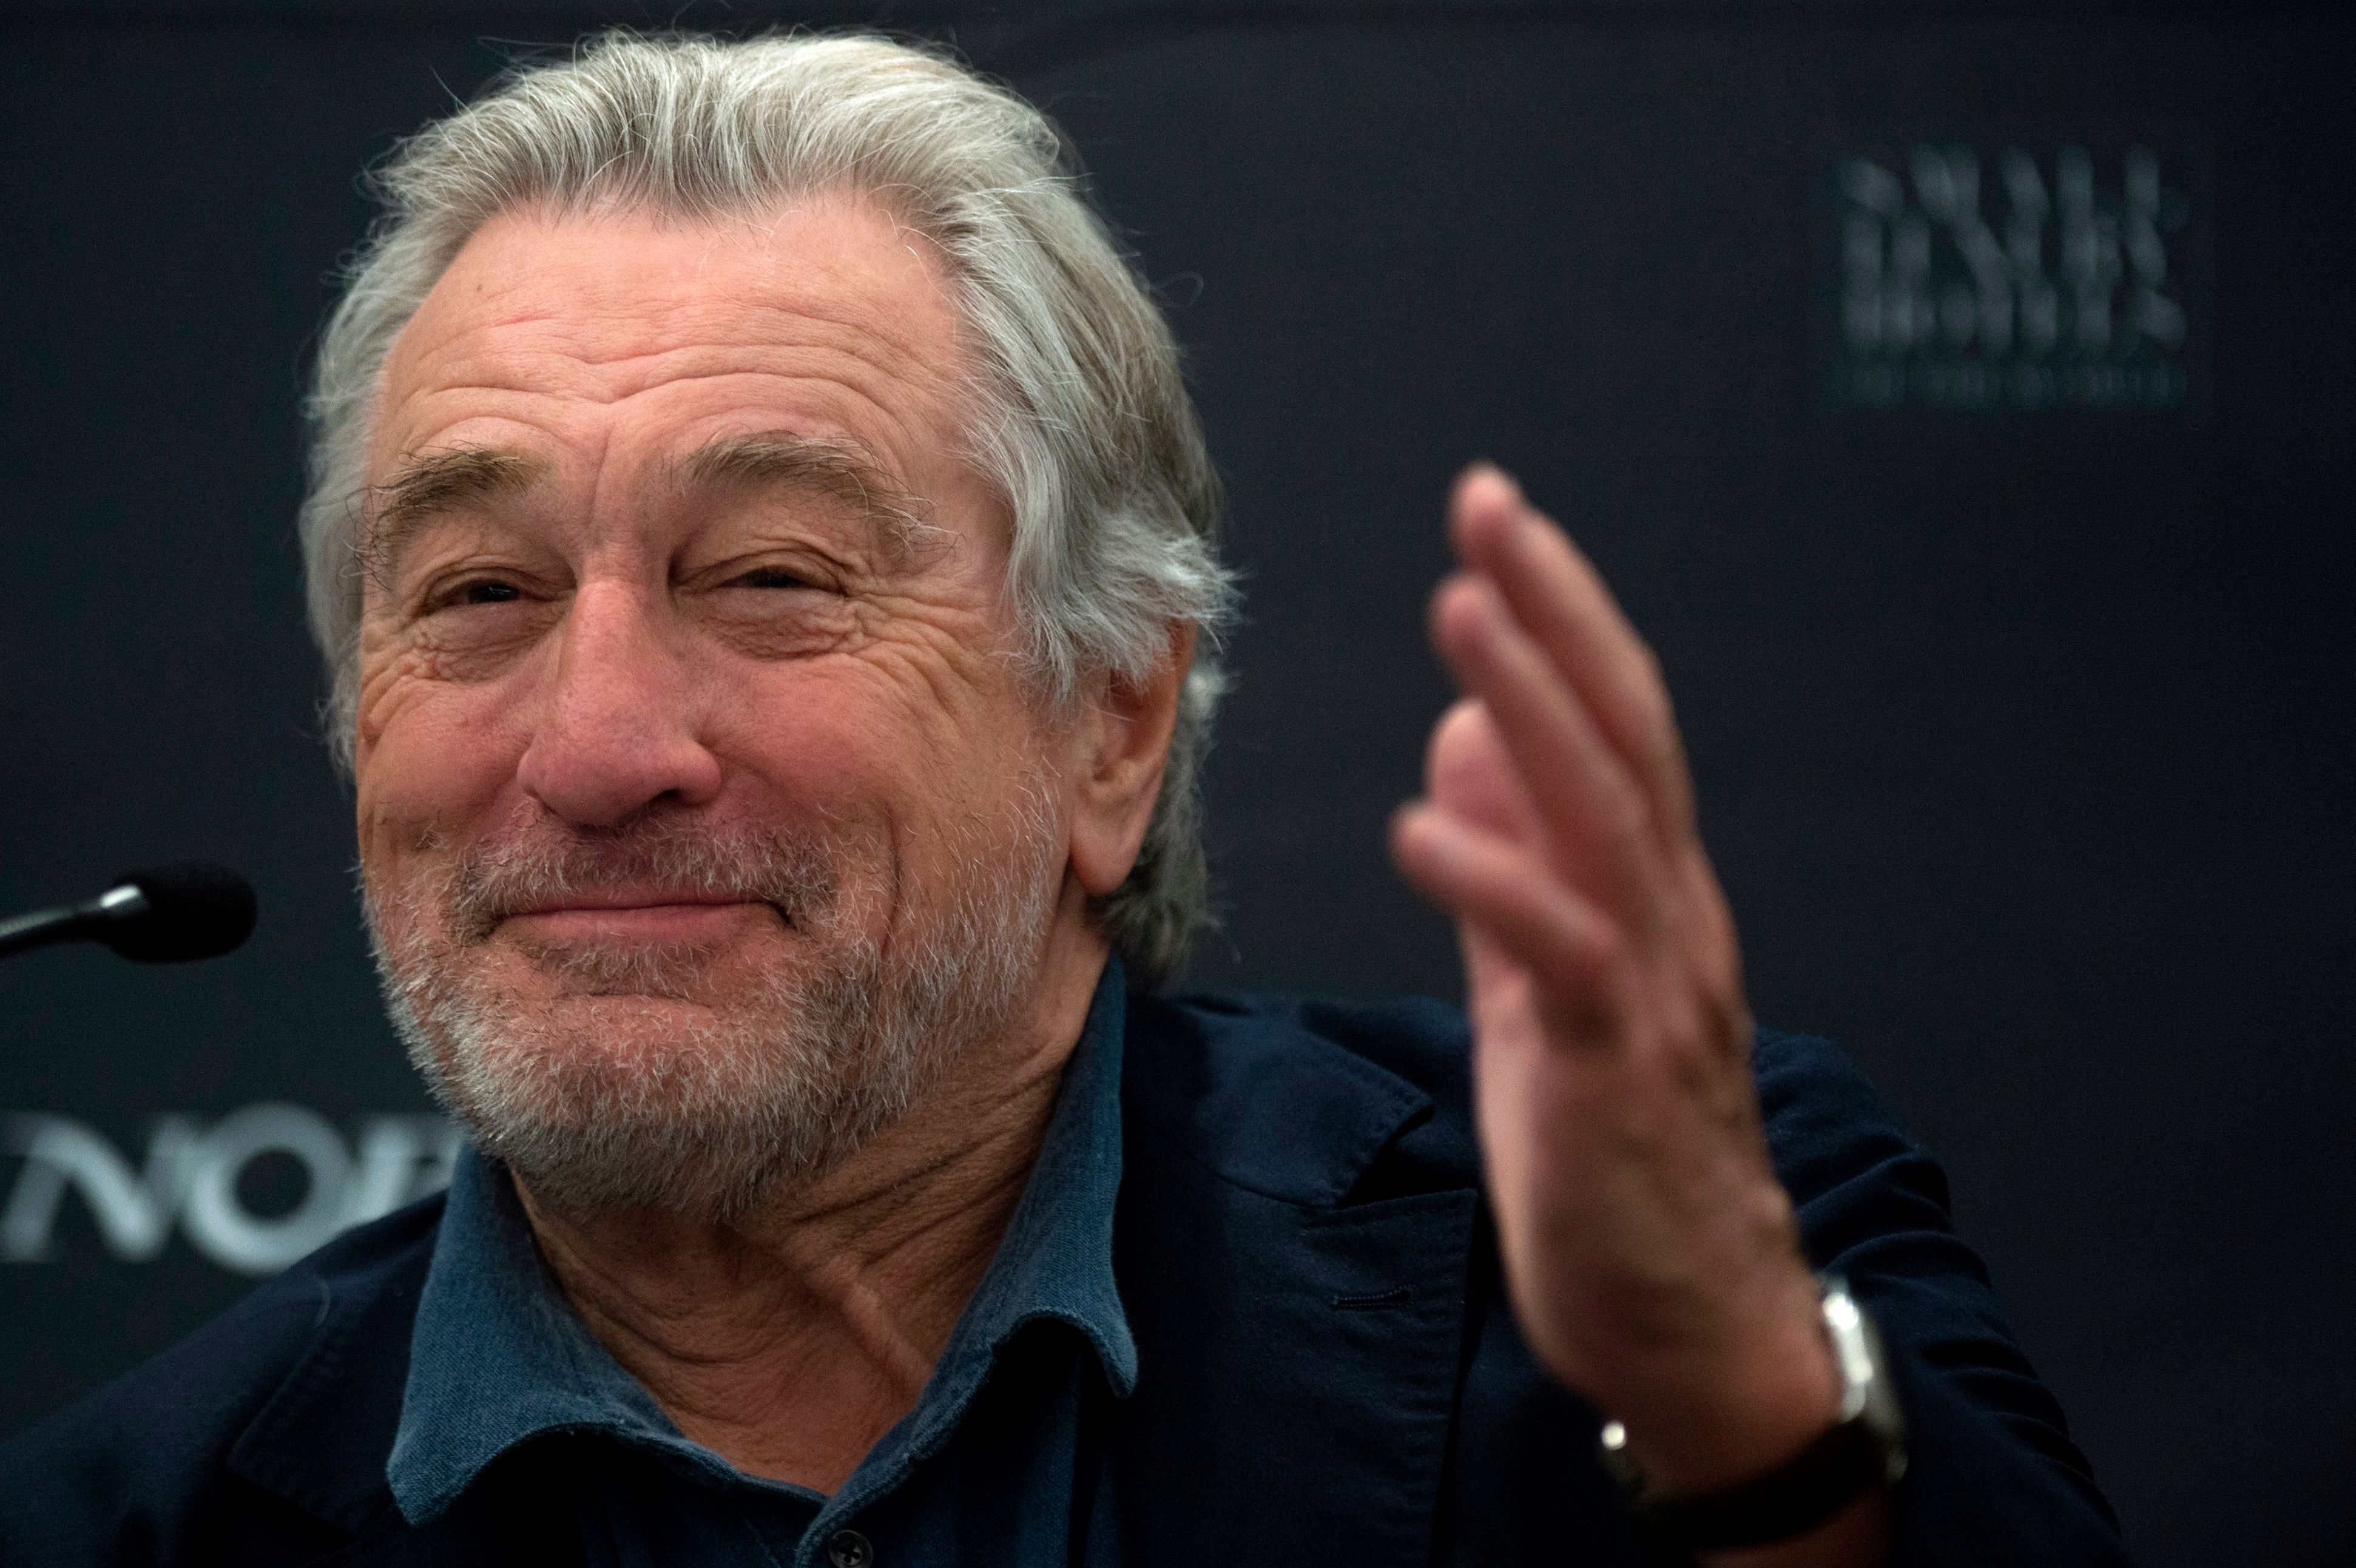 US actor Robert De Niro gives a press conference during the opening of the new Nobu Hotel Marbella, on May 16, 2018 in Marbella. (Photo by JORGE GUERRERO / AFP)        (Photo credit should read JORGE GUERRERO/AFP/Getty Images)